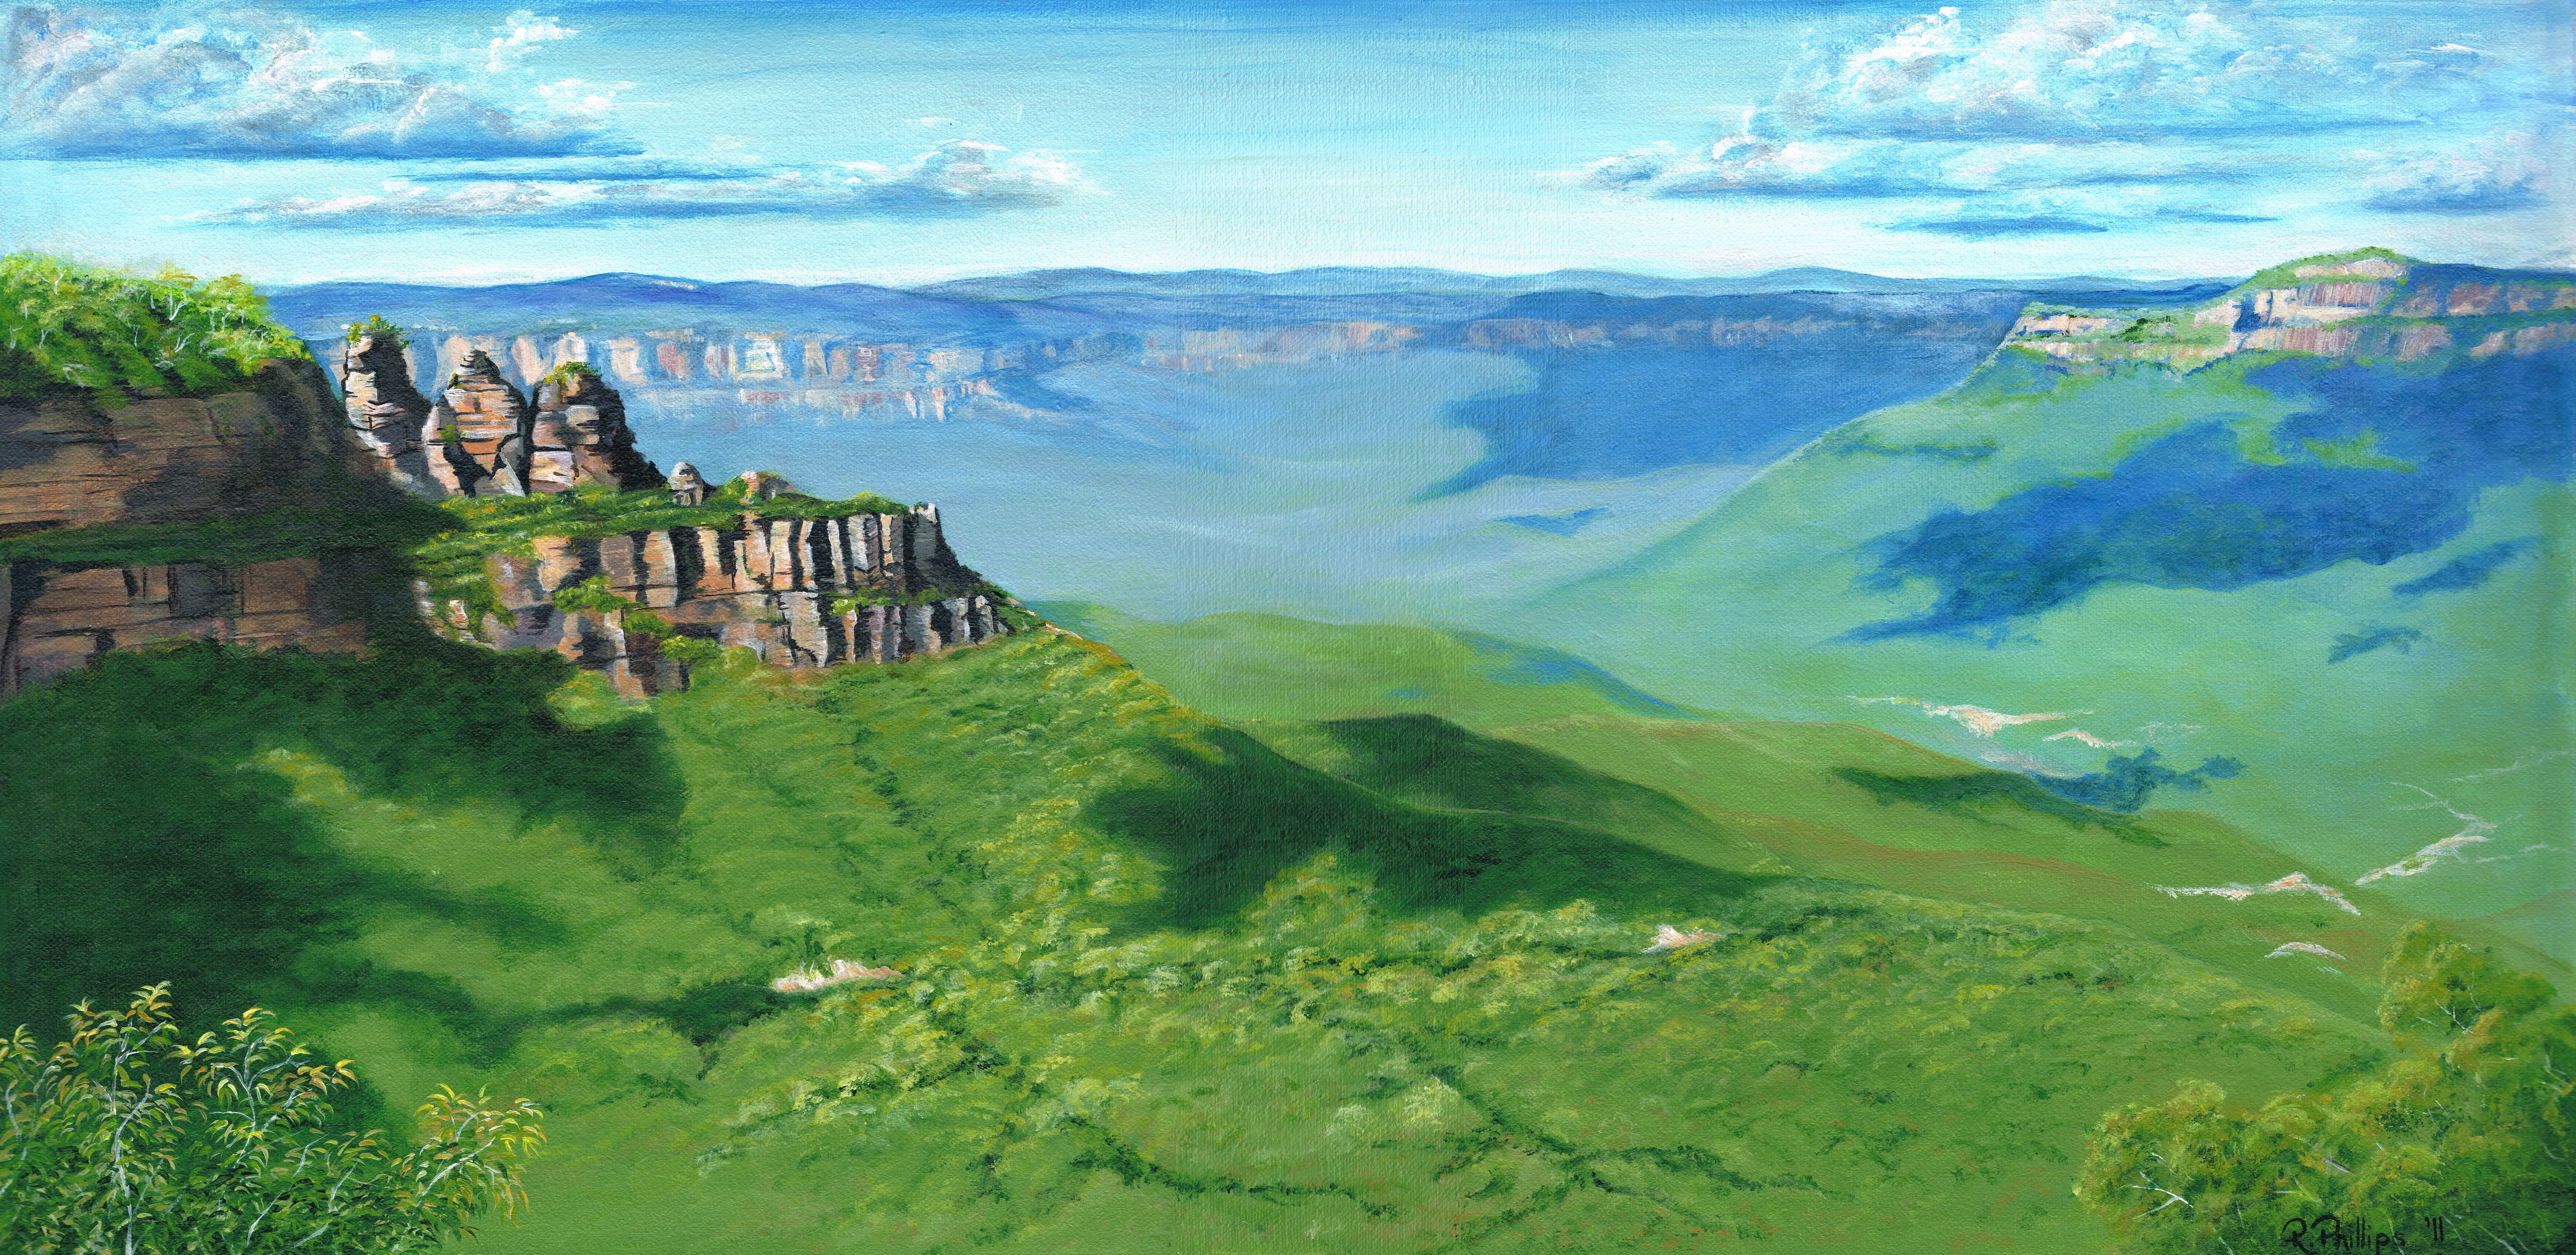 Panorama Landscape painting of the beautiful Blue Mountains